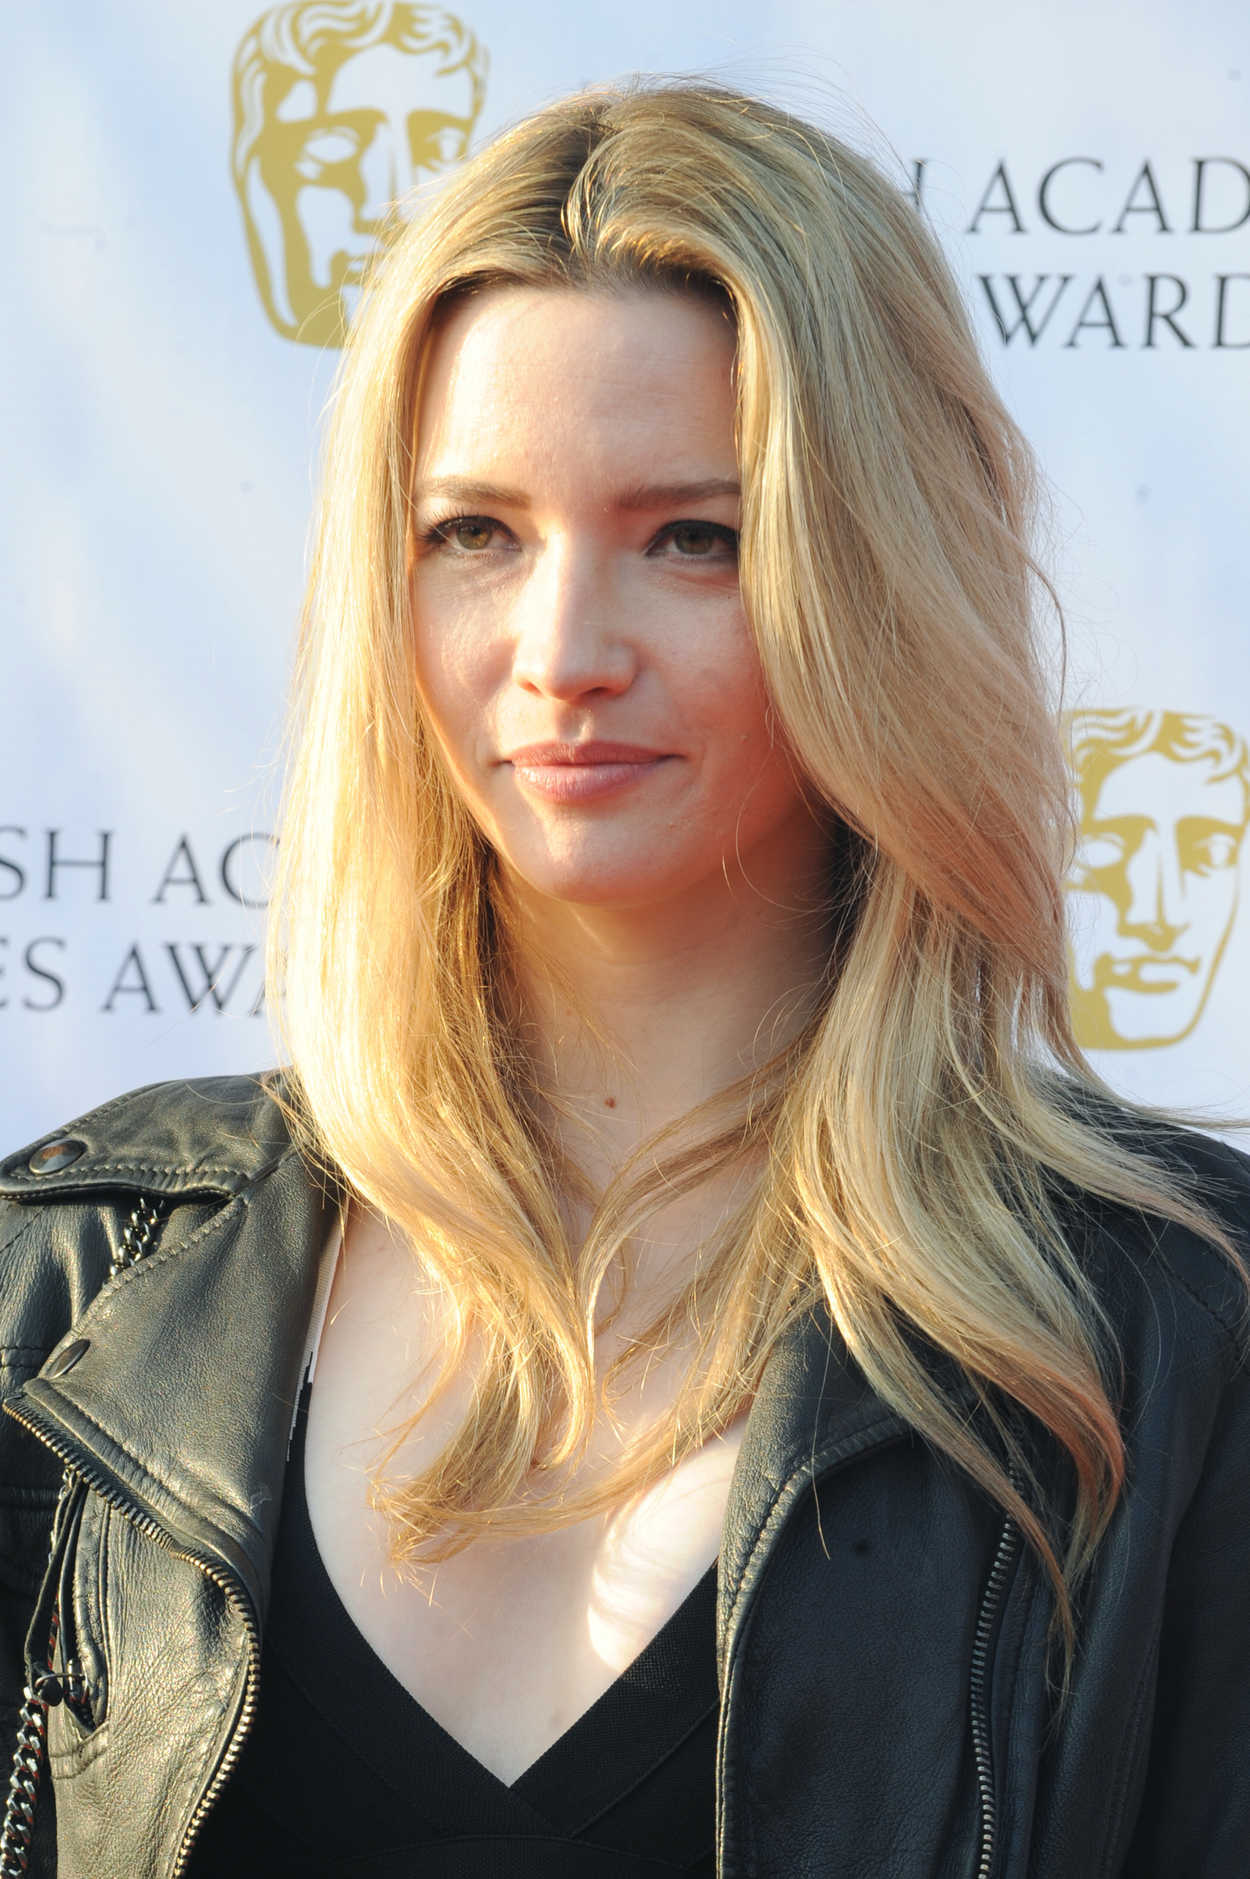 burt's bees_Talulah Riley at the British Academy Games Awards in London 04/06/2017 – celebsla.com